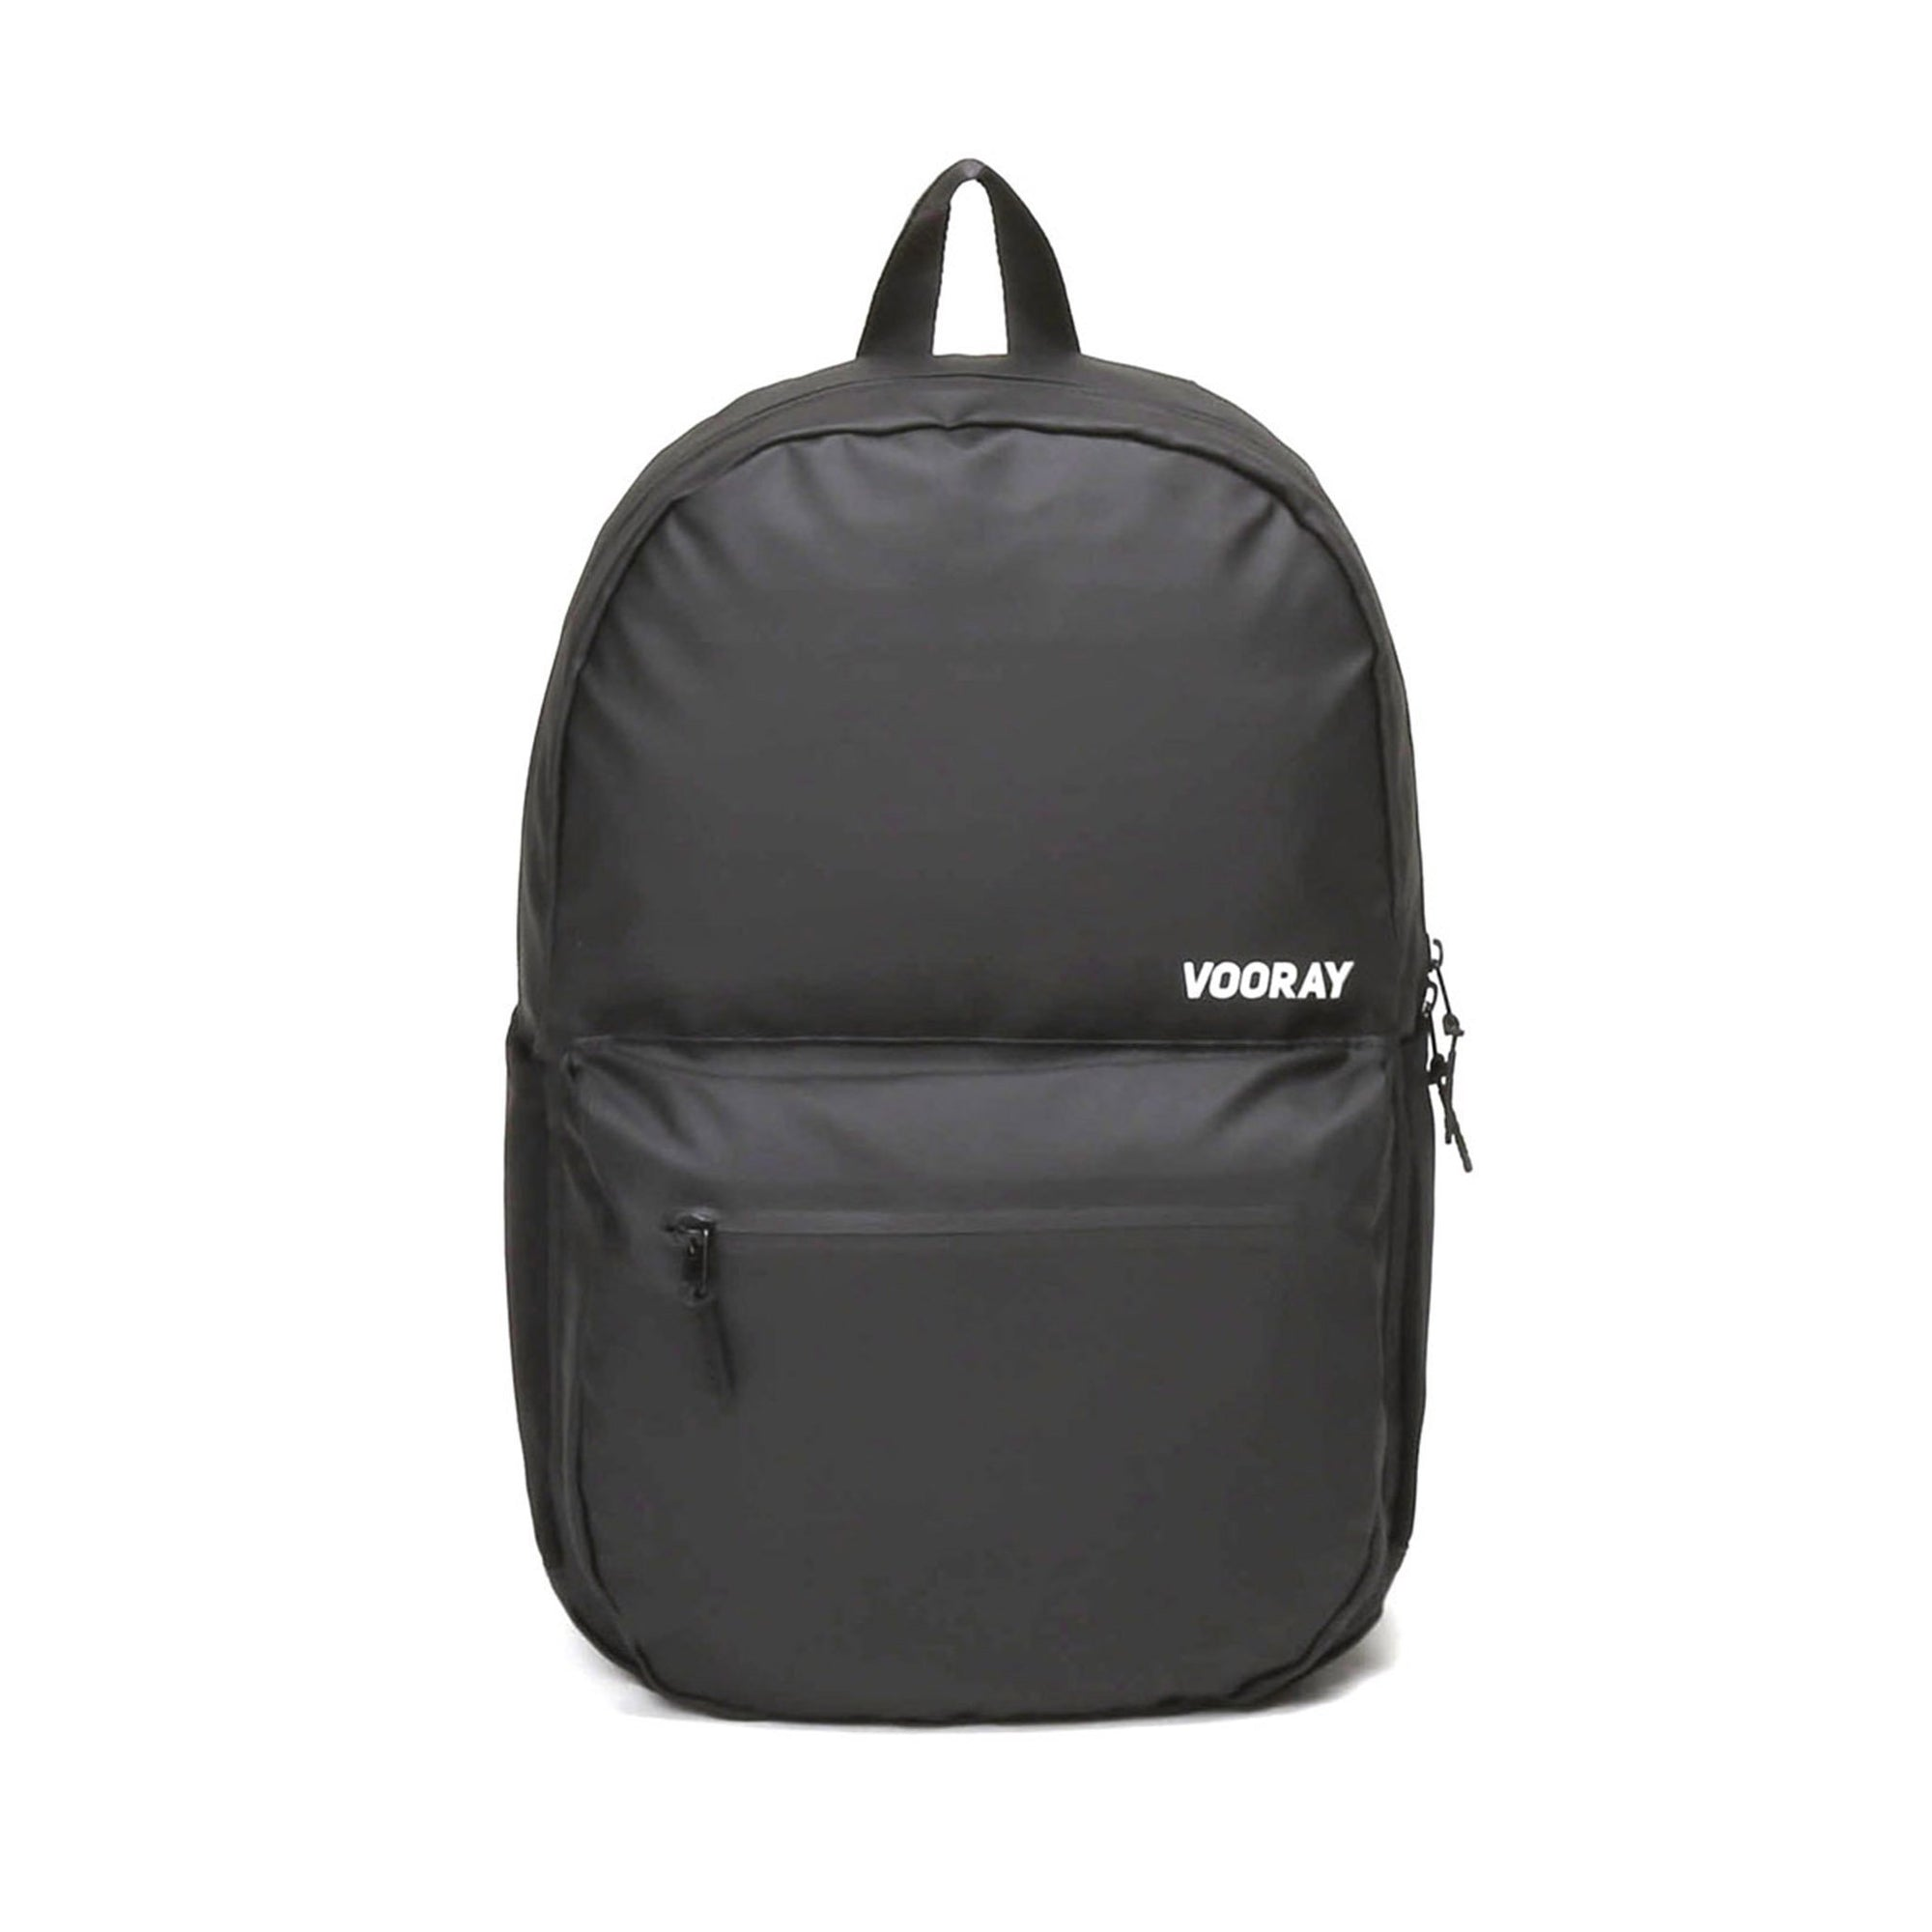 Vooray Ace Backpack- Matte Black